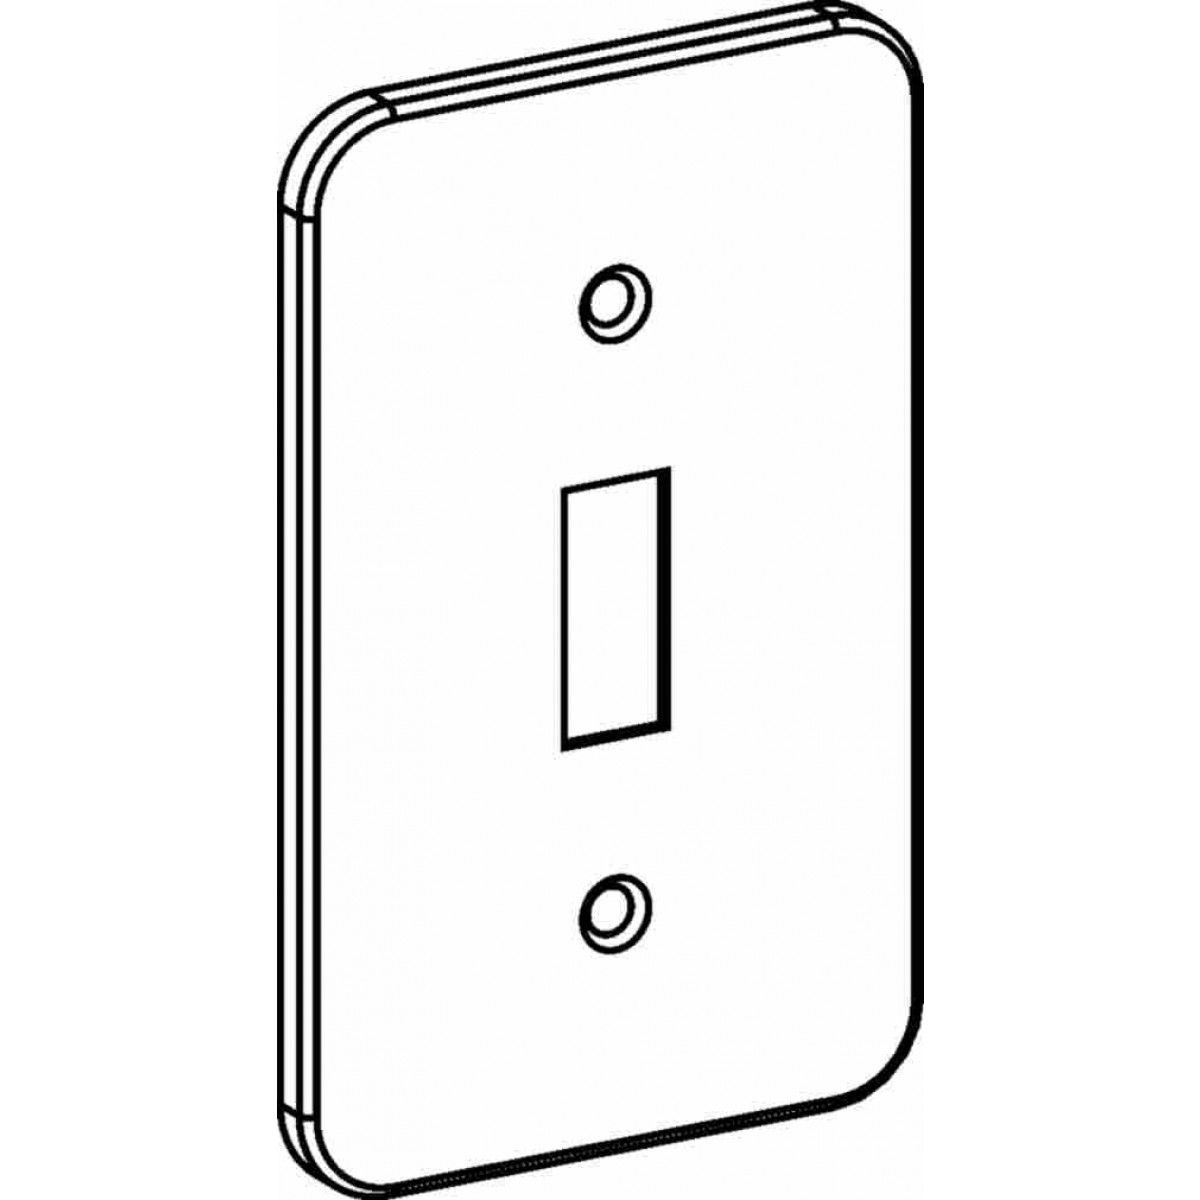 whbc-ts - handy box covers - electrical box covers and rings